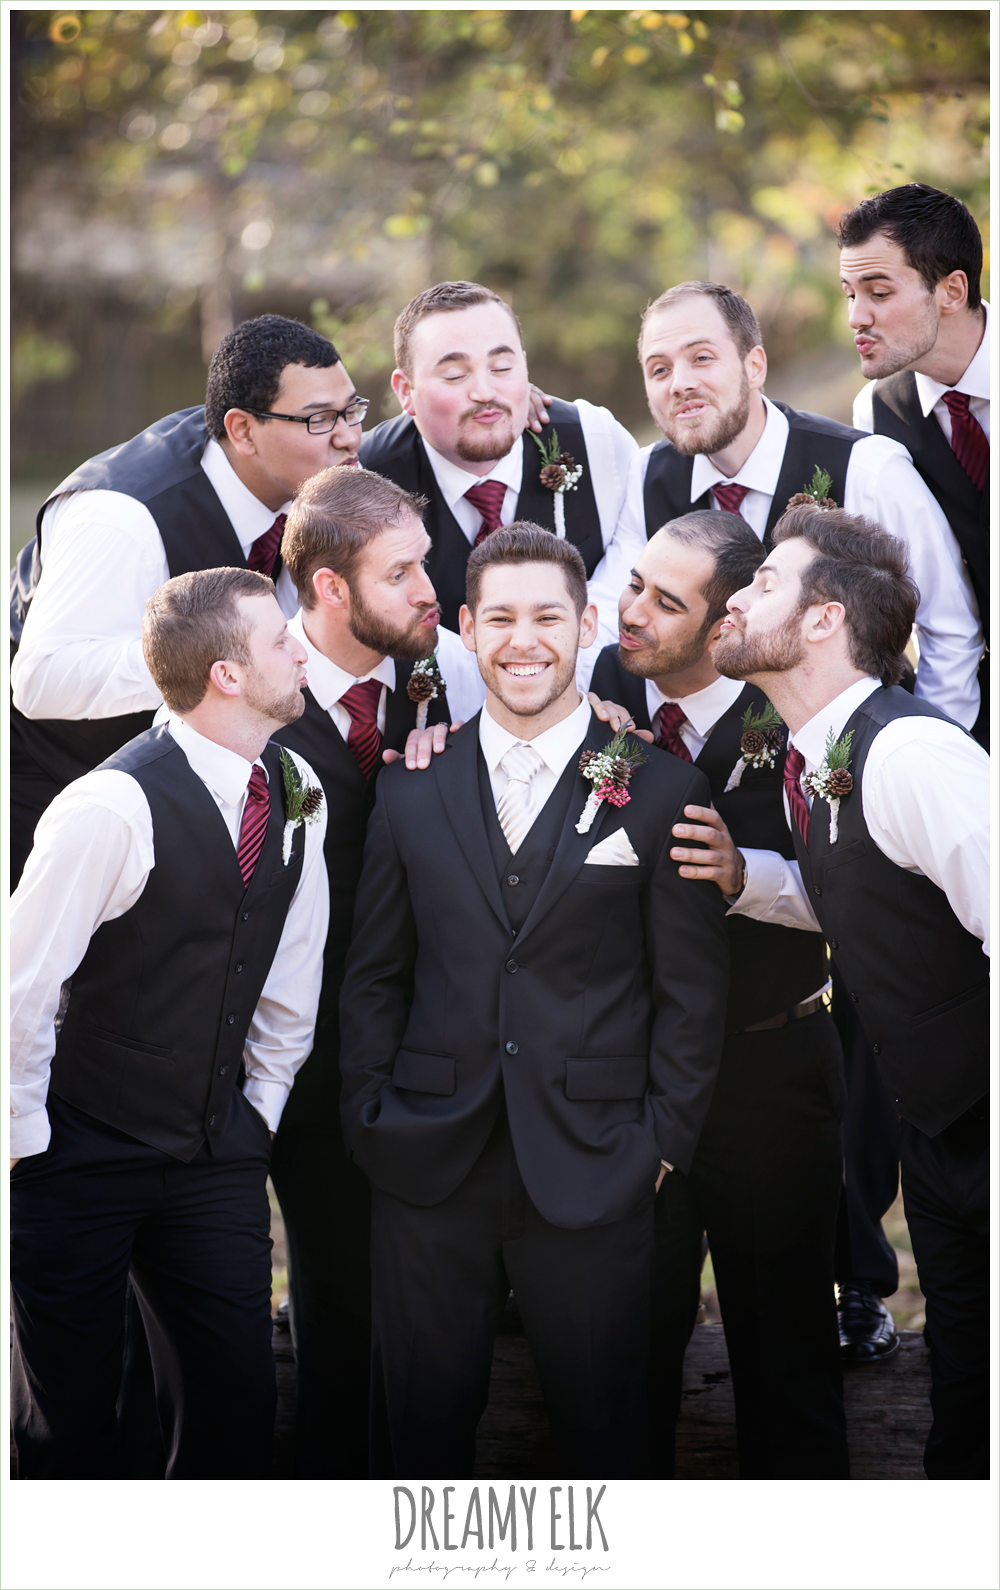 funny groomsmen photo, groom and groomsmen, vests and ties,